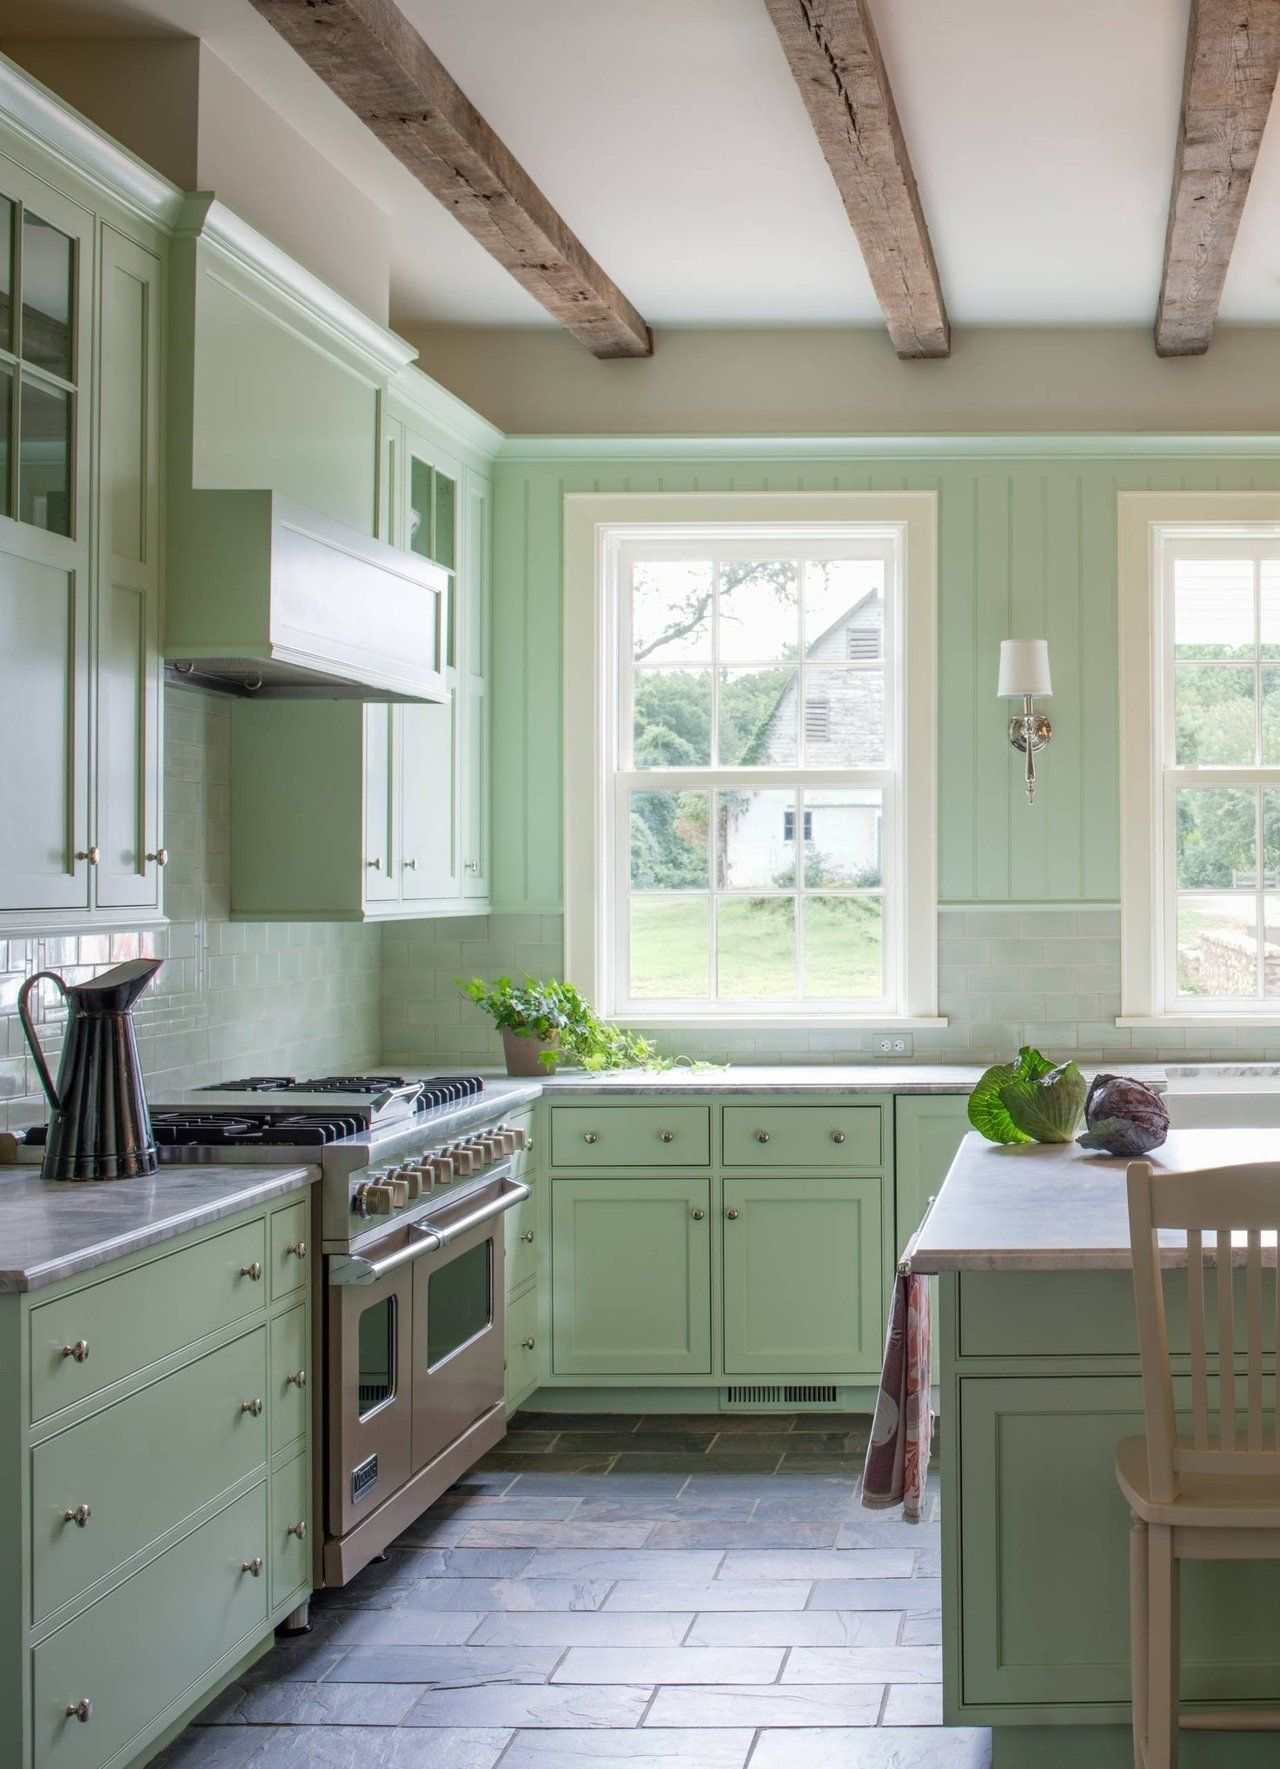 15 Kitchens With Bright Green Cabinets Farmhouse Style Kitchen Green Kitchen Cabinets Beautiful Kitchens